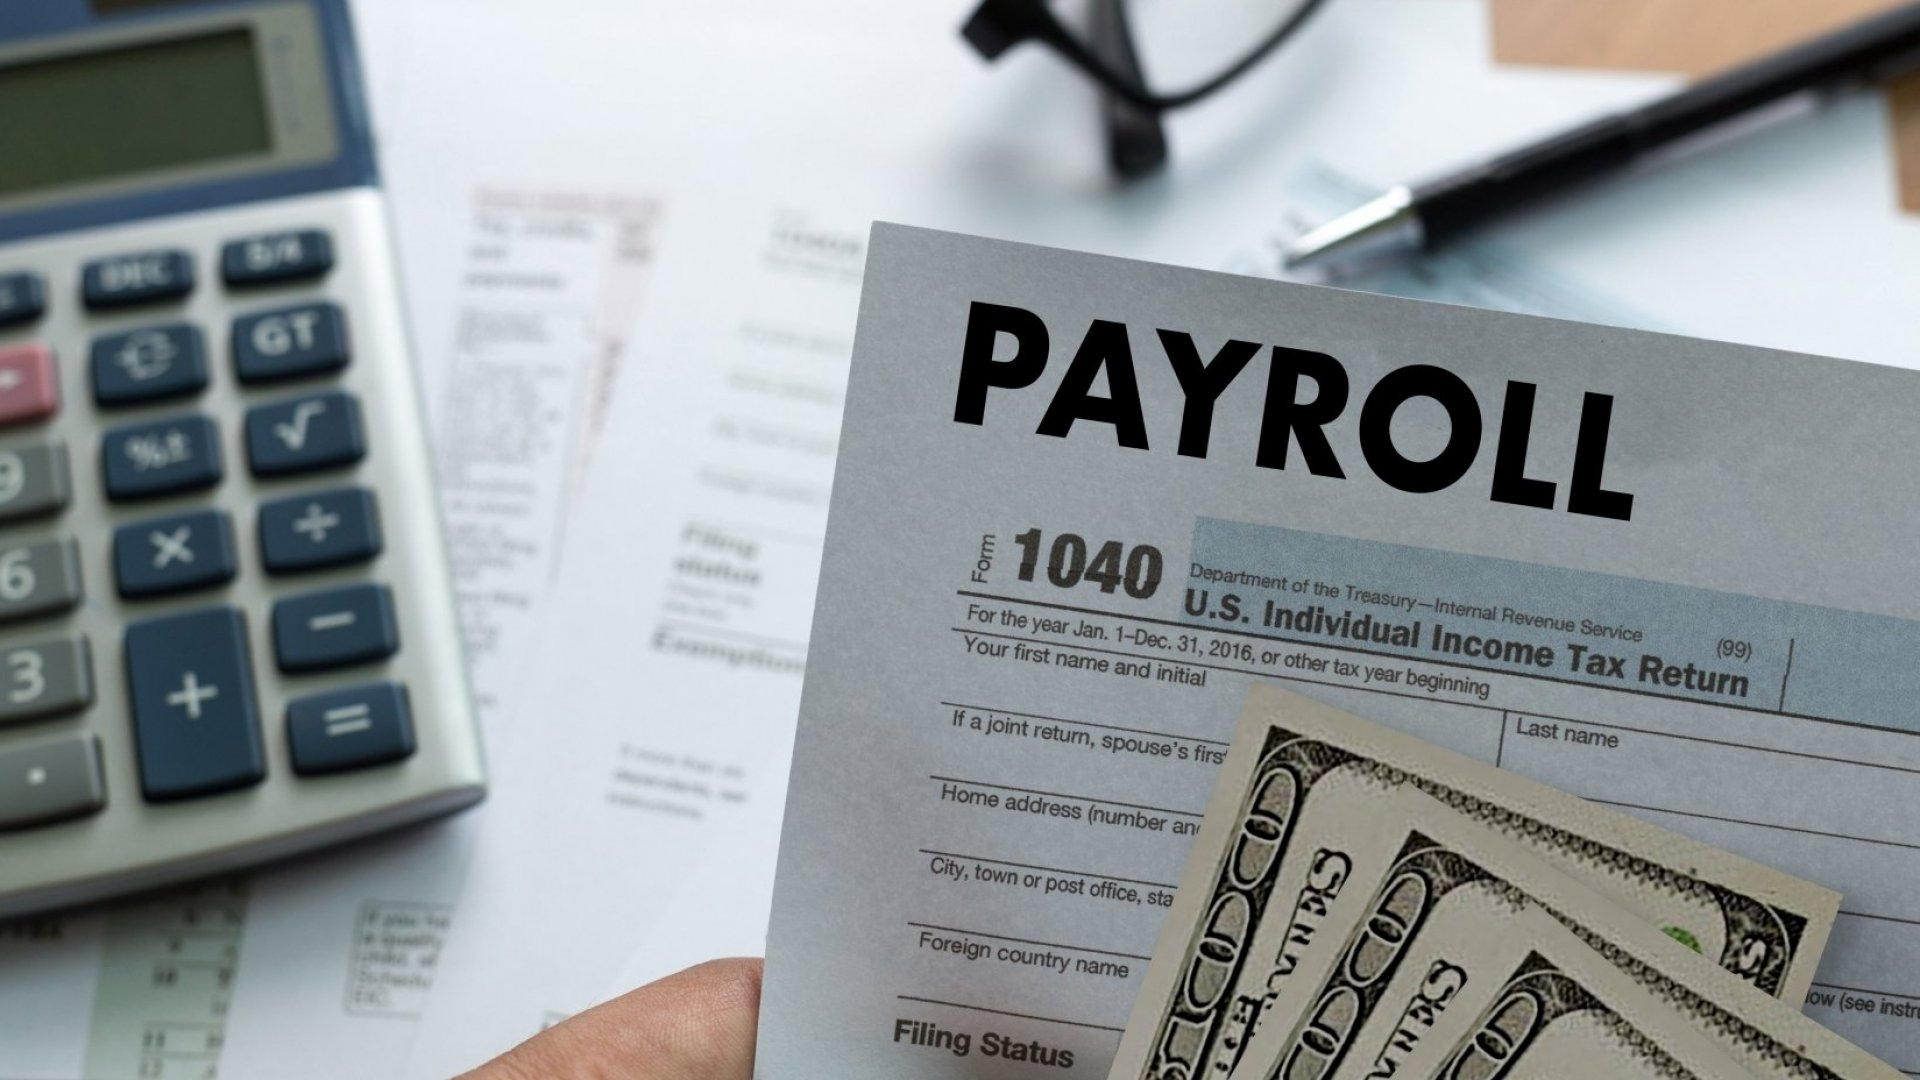 Five Tips for Outsourcing Your Small Business Payroll Operations